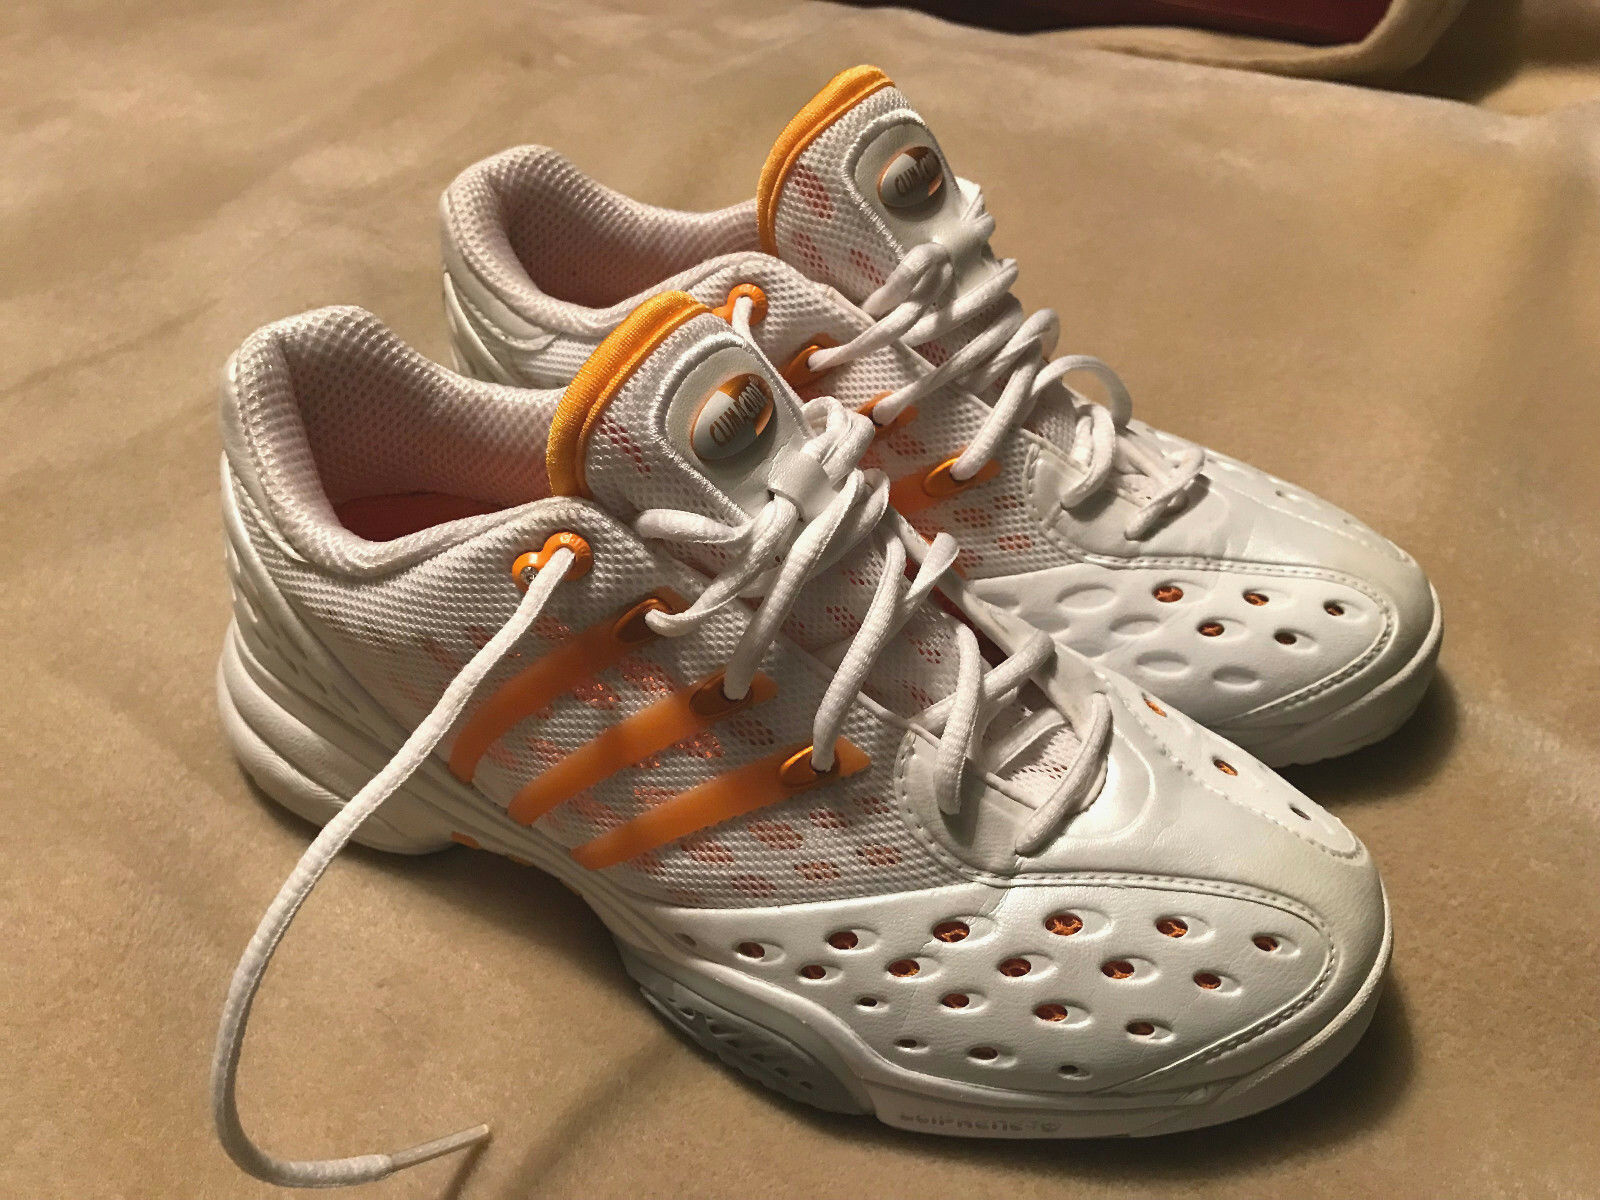 Womens Adidas Adiprene Climacool Trainers Size 5 Great Condition, Hardly Worn